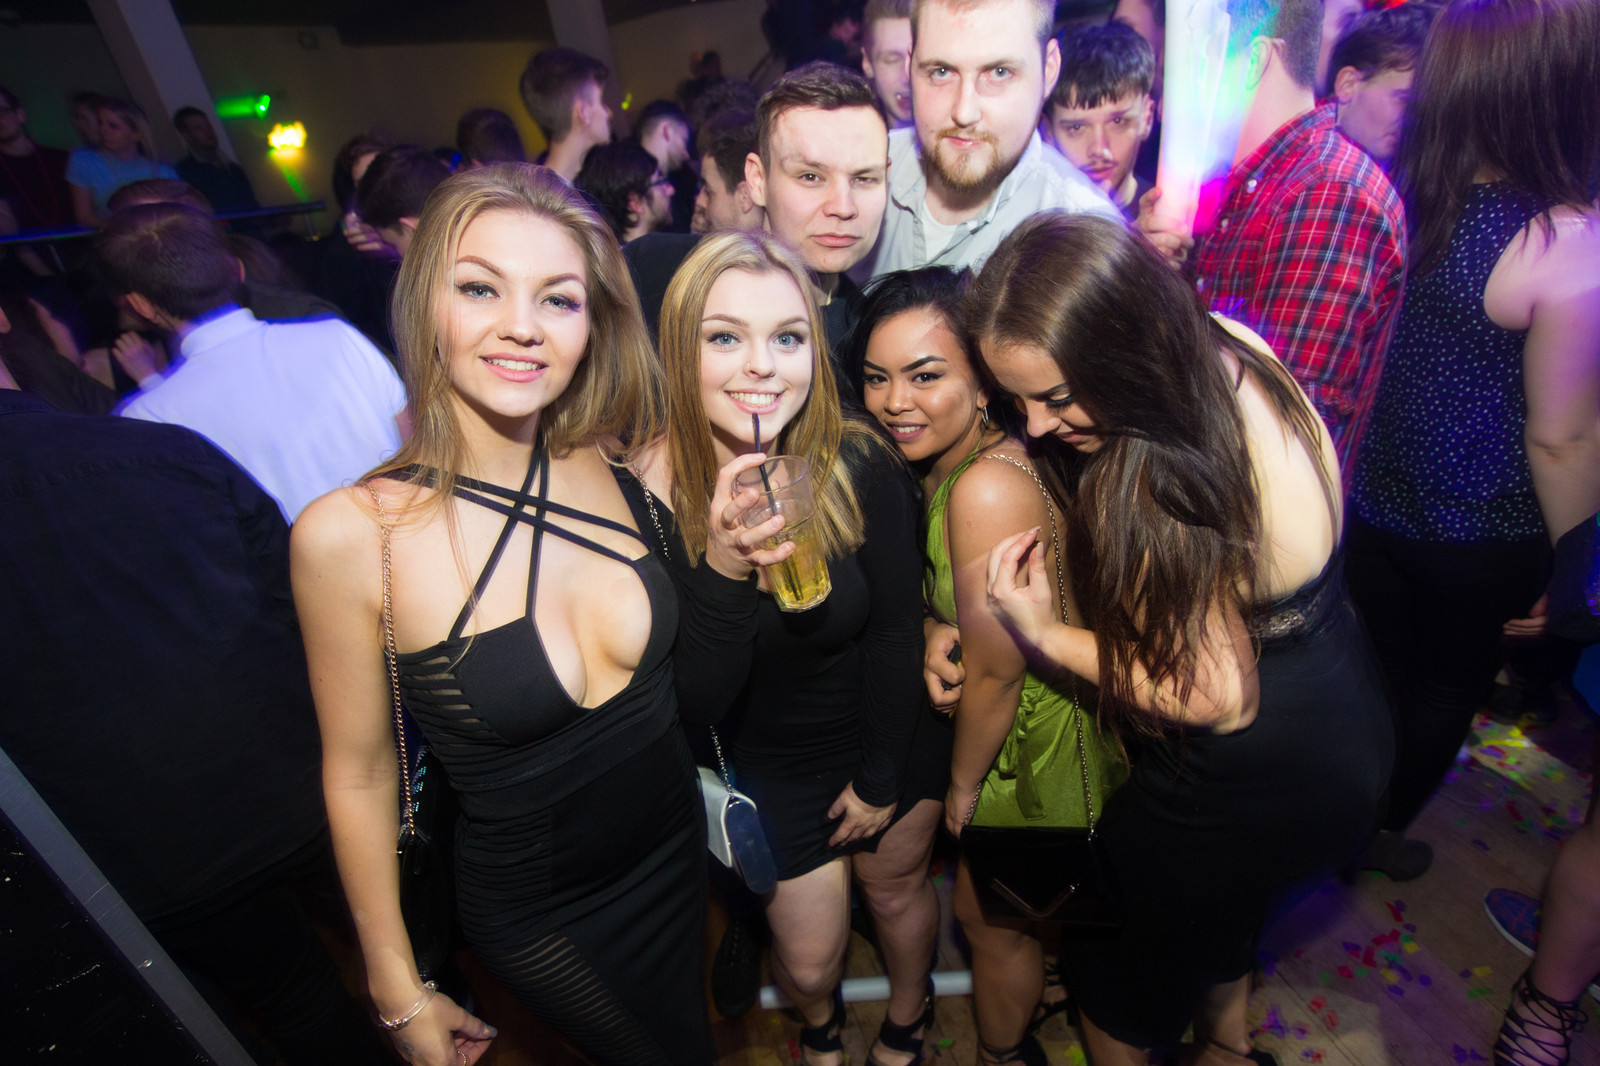 Southend night clubs